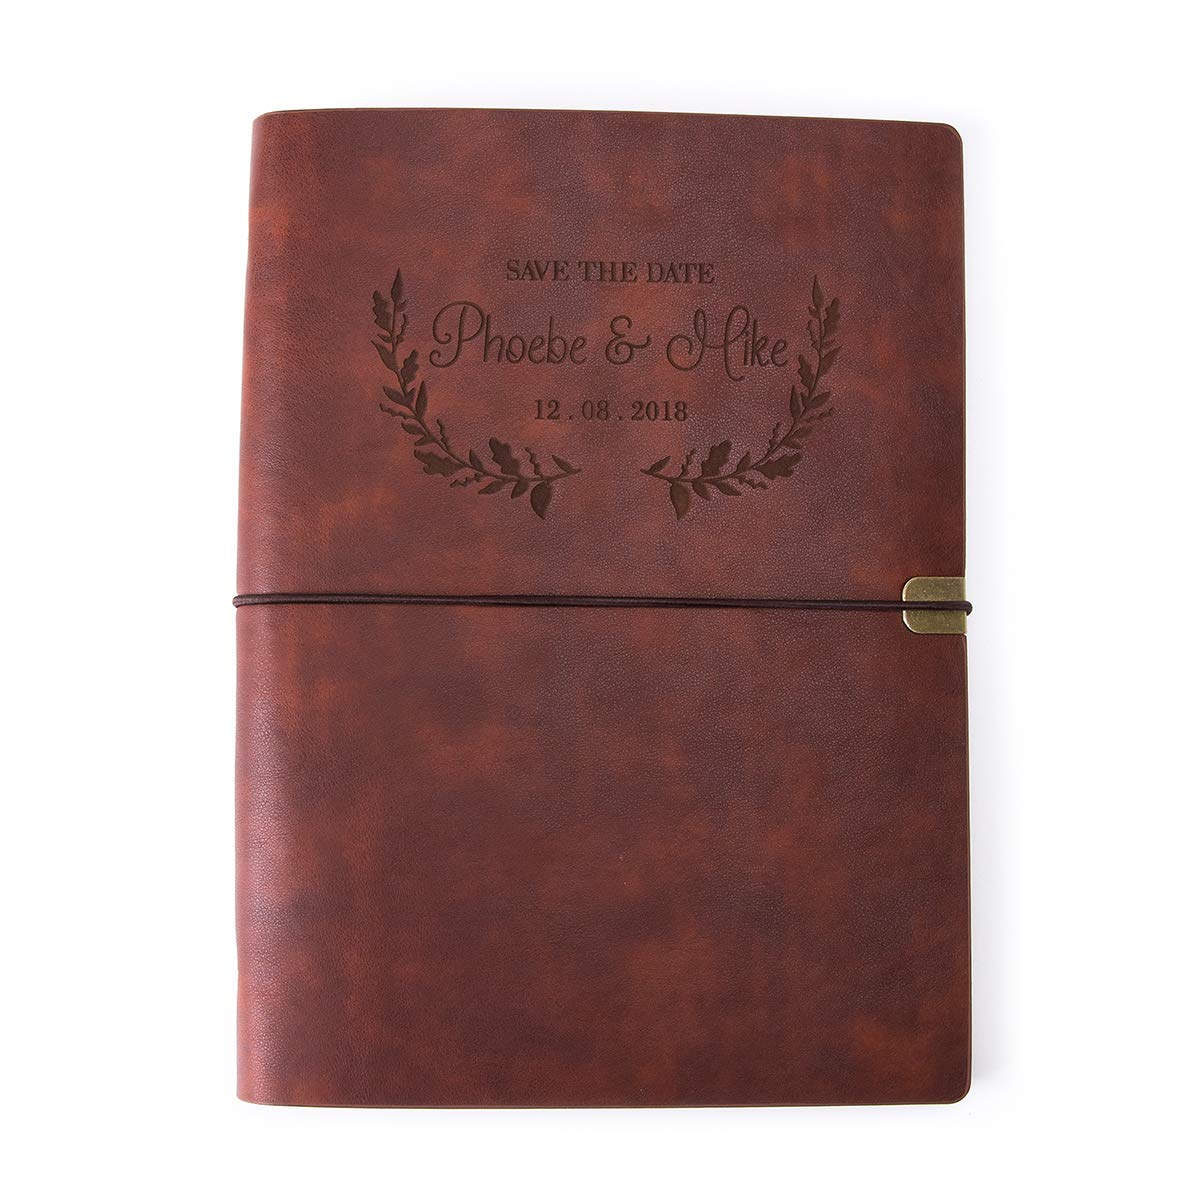 Personalized Leatherette Journal Monogrammed Wide Ruled Soft Cover Writing Notebook Refillable Loose-Leaf 6-Ring Binders Banded Custom Personal Diary(A5-Brown) by Fanery Sue